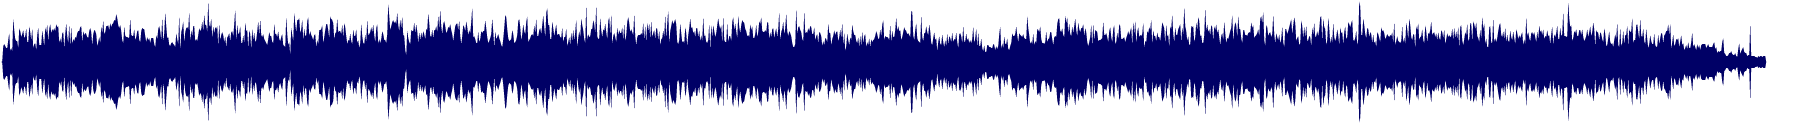 waveform of track #80208